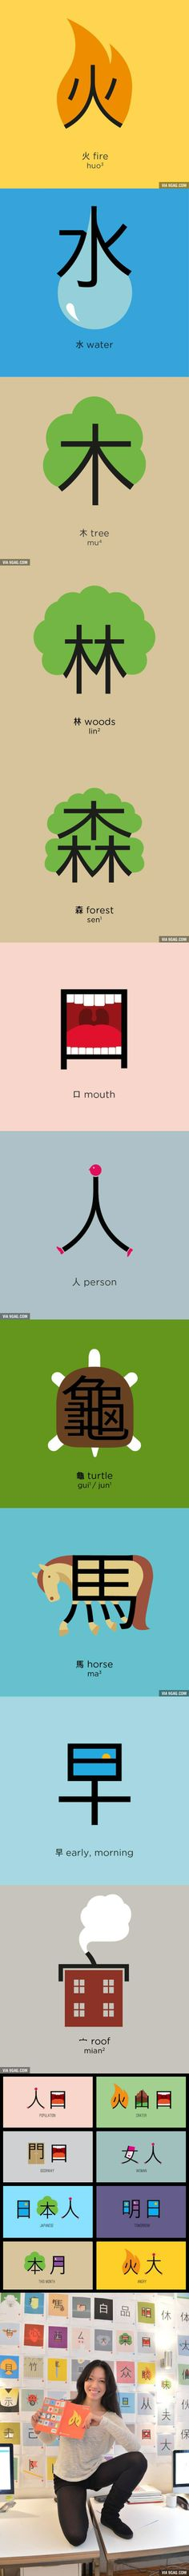 Clever Illustrations that Make It Easy to Learn Chinese. By ShaoLan Hsueh - Just DWL || The Ultimate Trolling